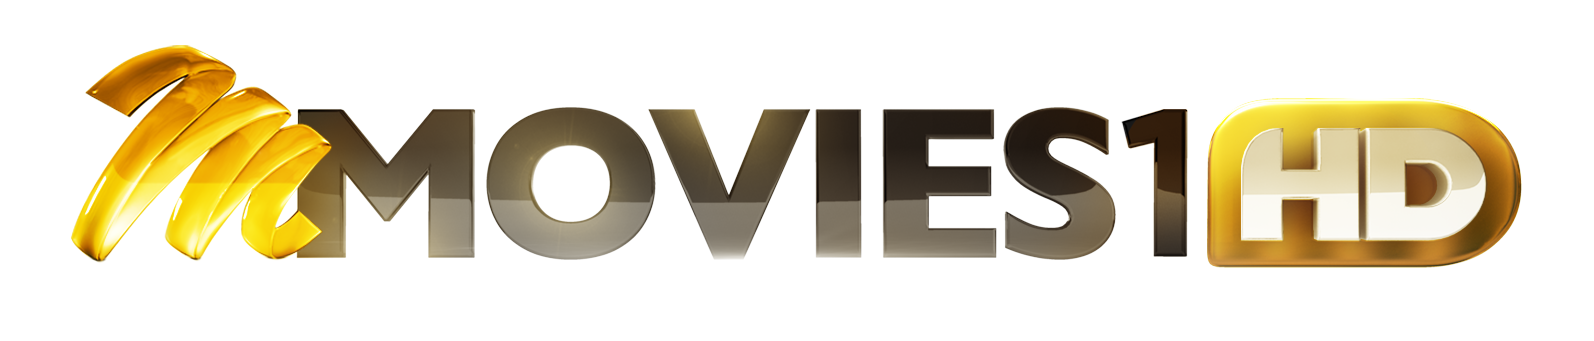 Image result for movies pic logo